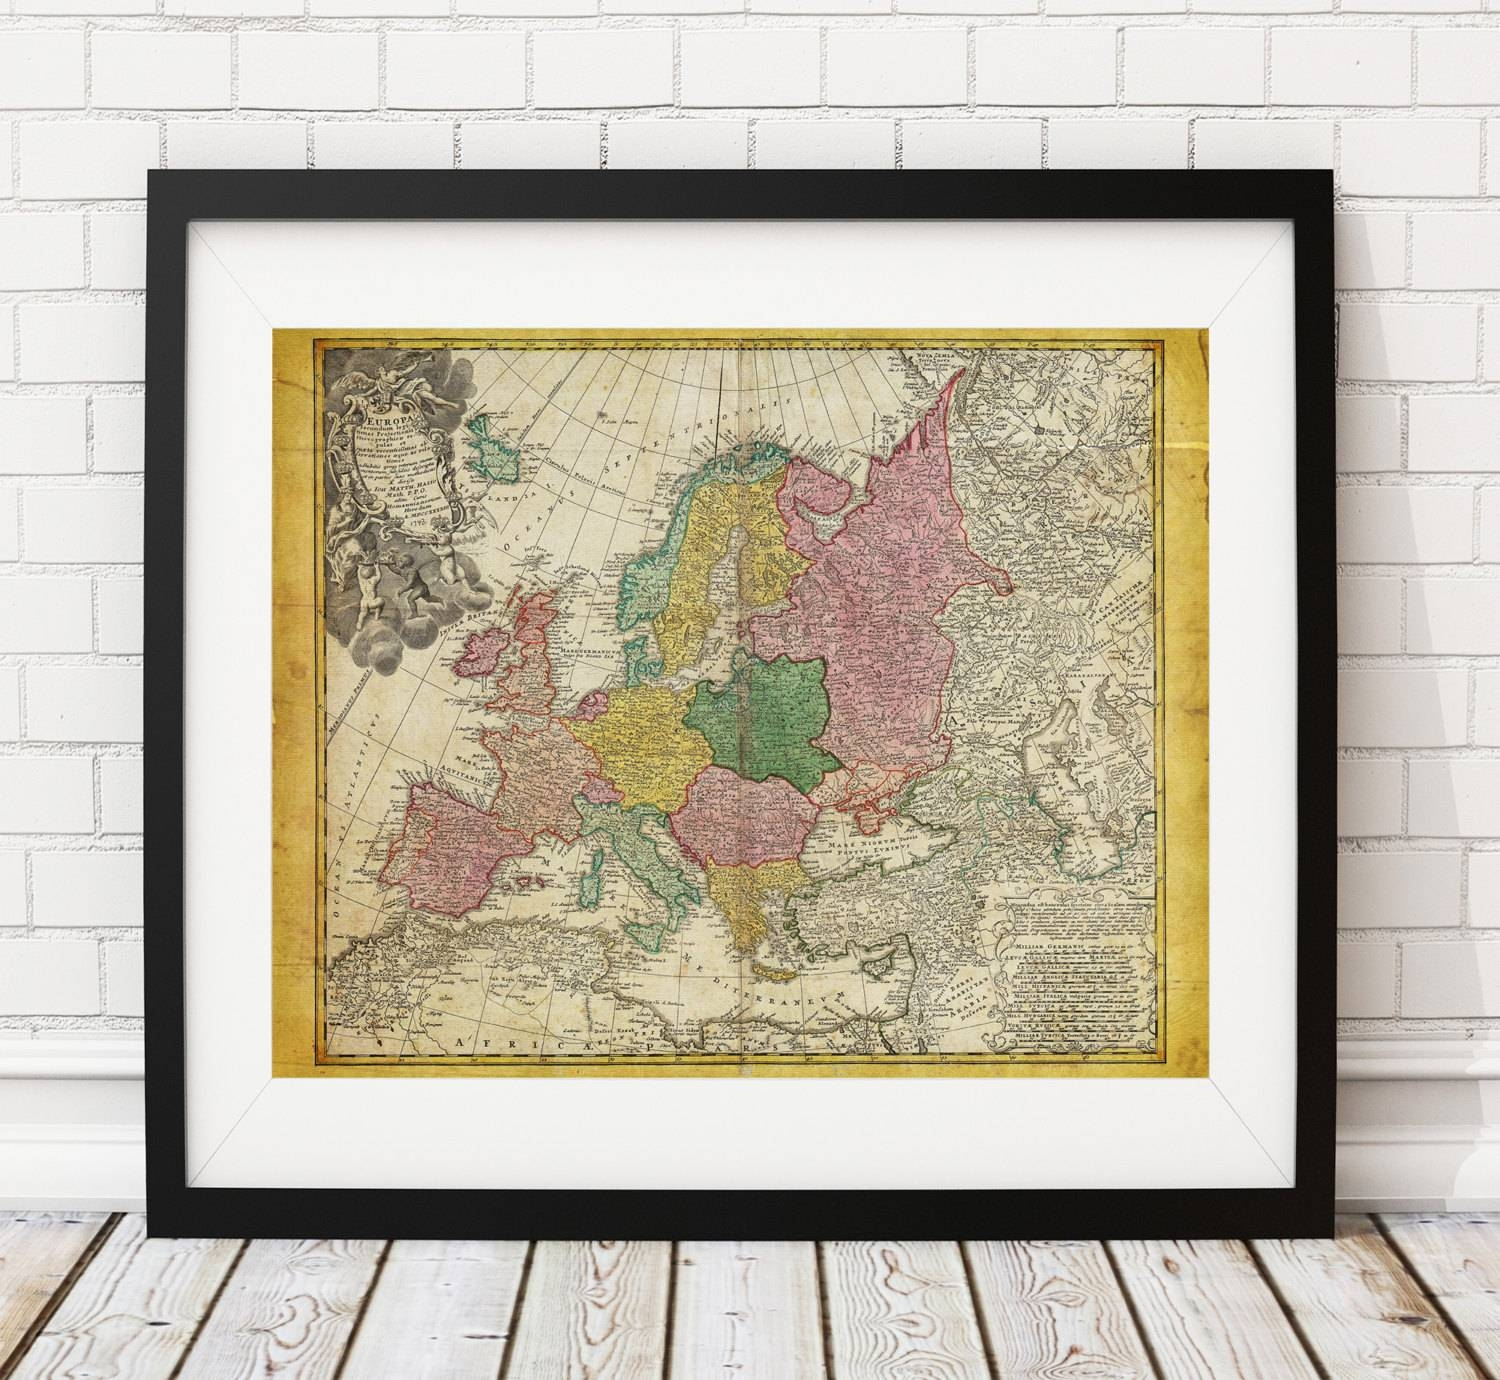 Europe Map Print, Vintage Map Art, Antique Map, Wall Art, History Intended For Recent Europe Map Wall Art (Gallery 3 of 20)